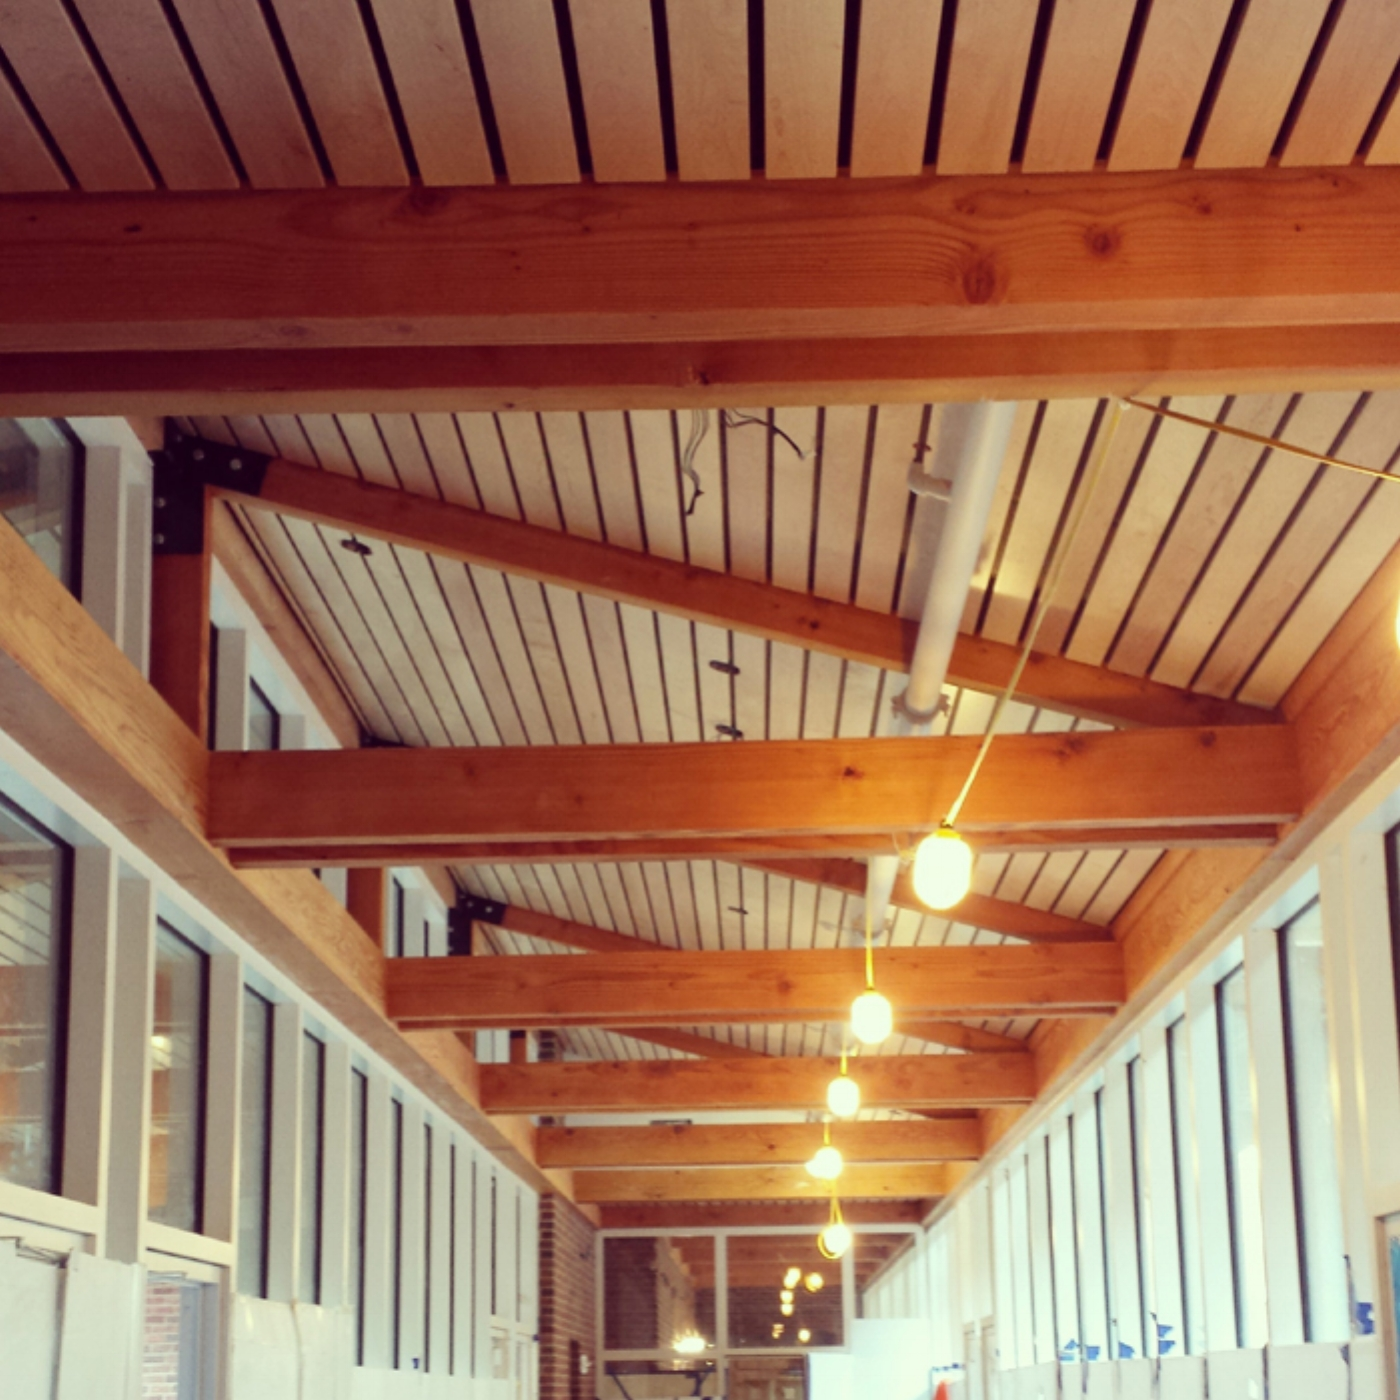 Wood Ceilings  -- Hardwood doesn't just have to go on the floors. With the help of Rulon International , Ozburn-Hessey can make all your ceiling installation dreams come true, with hardwood ceiling tiles. Take Vanderbilt University's Kissam Hall for example.